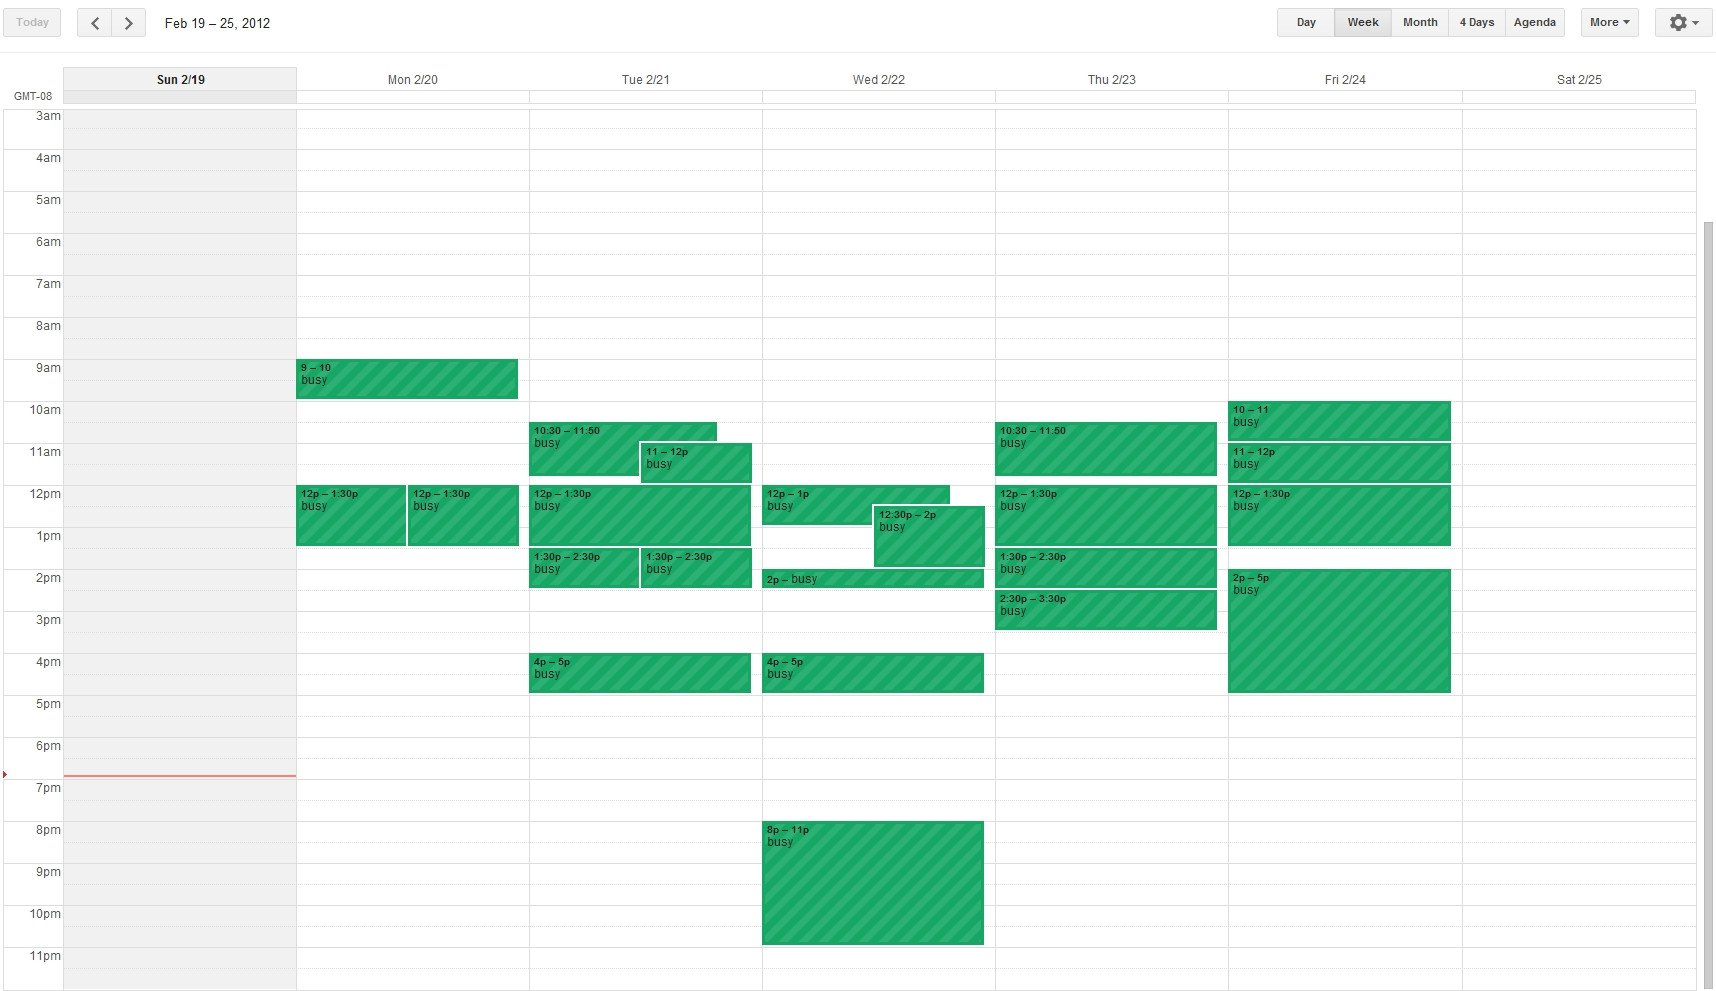 How Can I Create A Weekly Calendar View For An Android How To A Make A Two Week Schedule